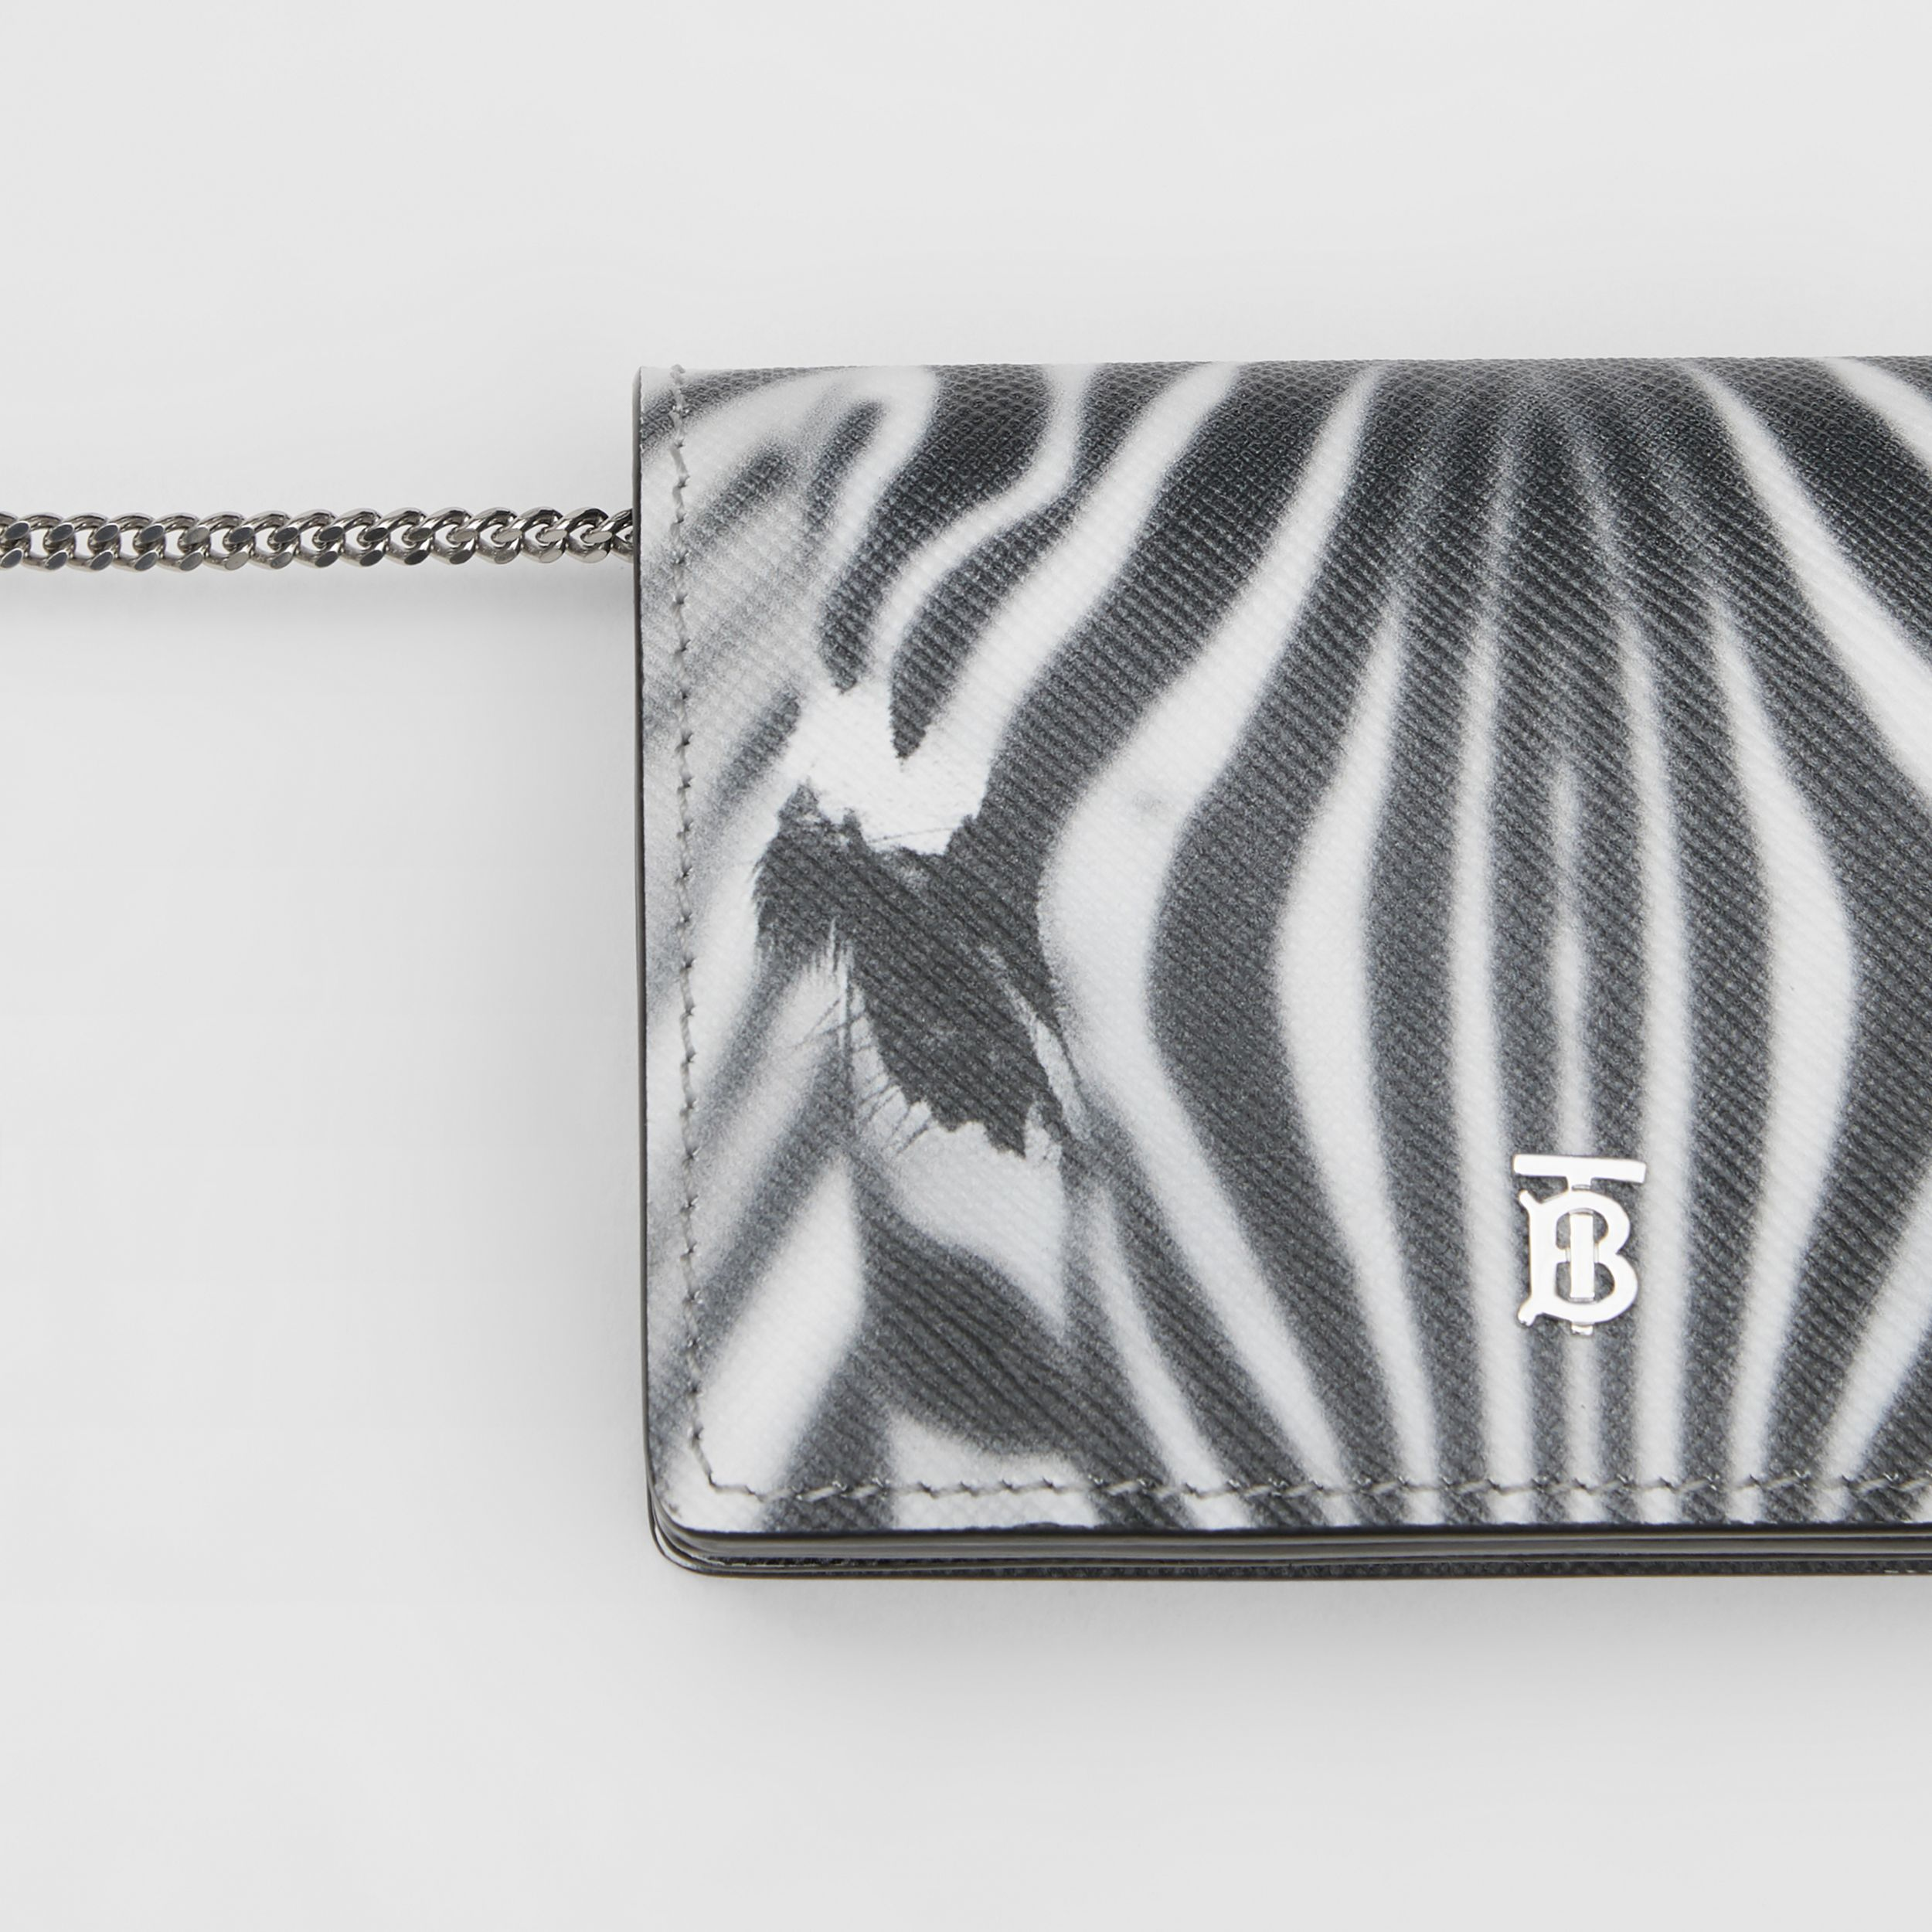 Zebra Print Leather Card Case with Detachable Strap in Black | Burberry - 2